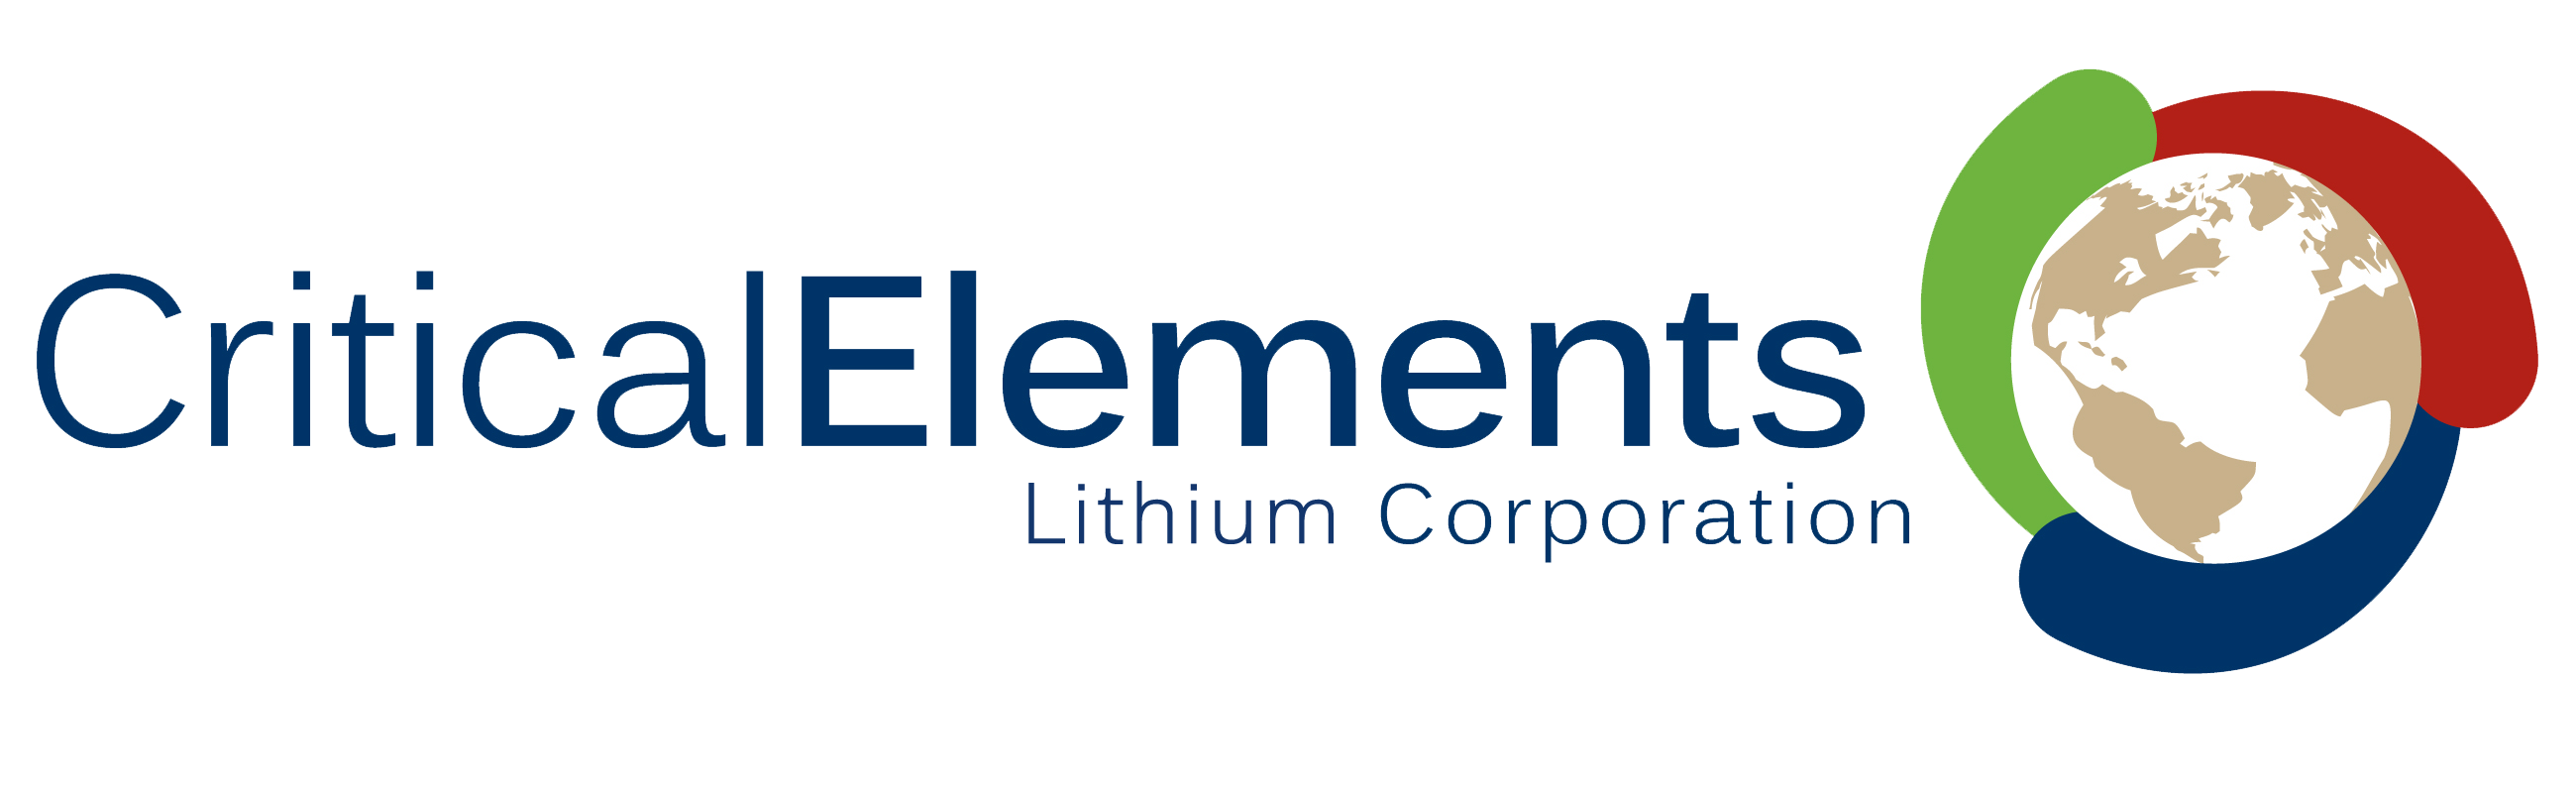 Critical Elements Corporation Logo